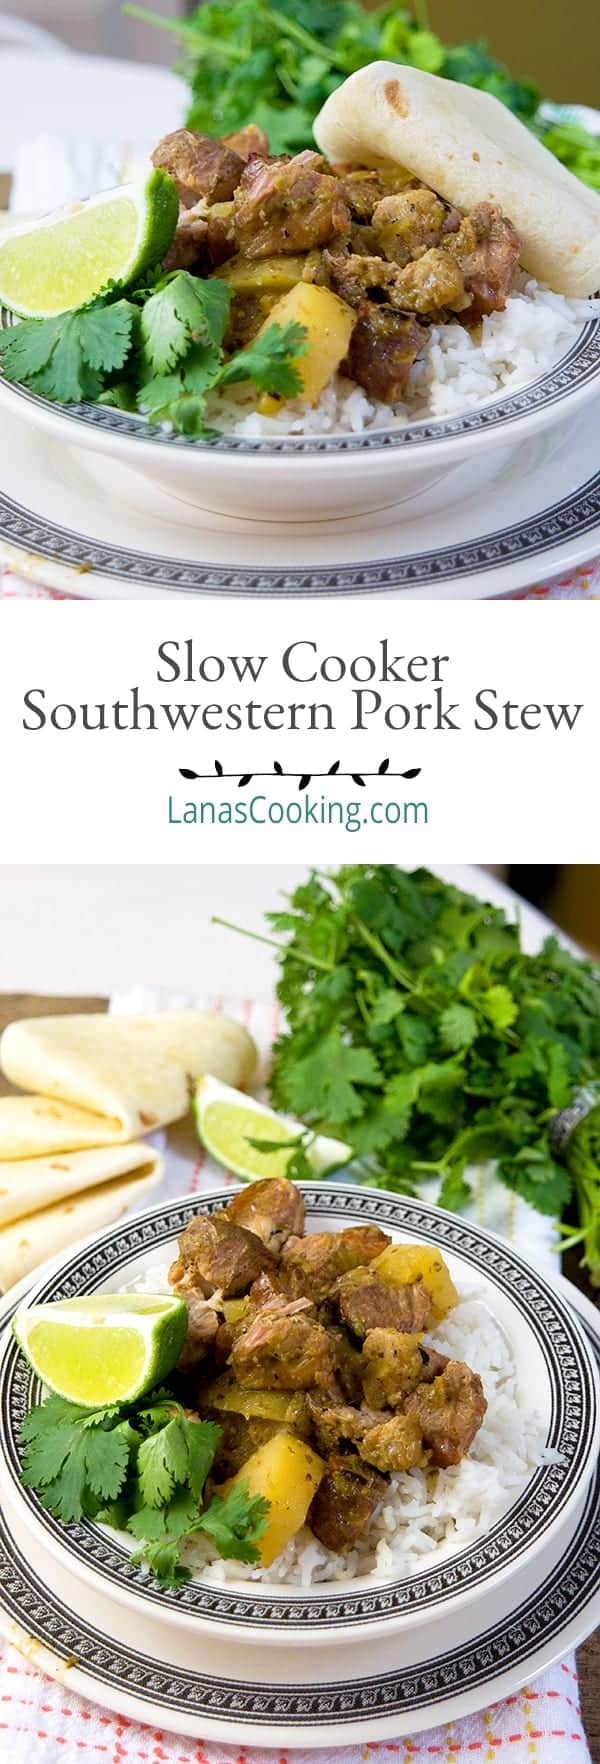 Pork, potatoes, and salsa verde make this delicious Slow Cooker Southwestern Pork Stew a Tex-Mex delight! Slow Cooker Southwestern Pork Stew from @NevrEnoughThyme https://www.lanascooking.com/slow-cooker-southwestern-pork-stew